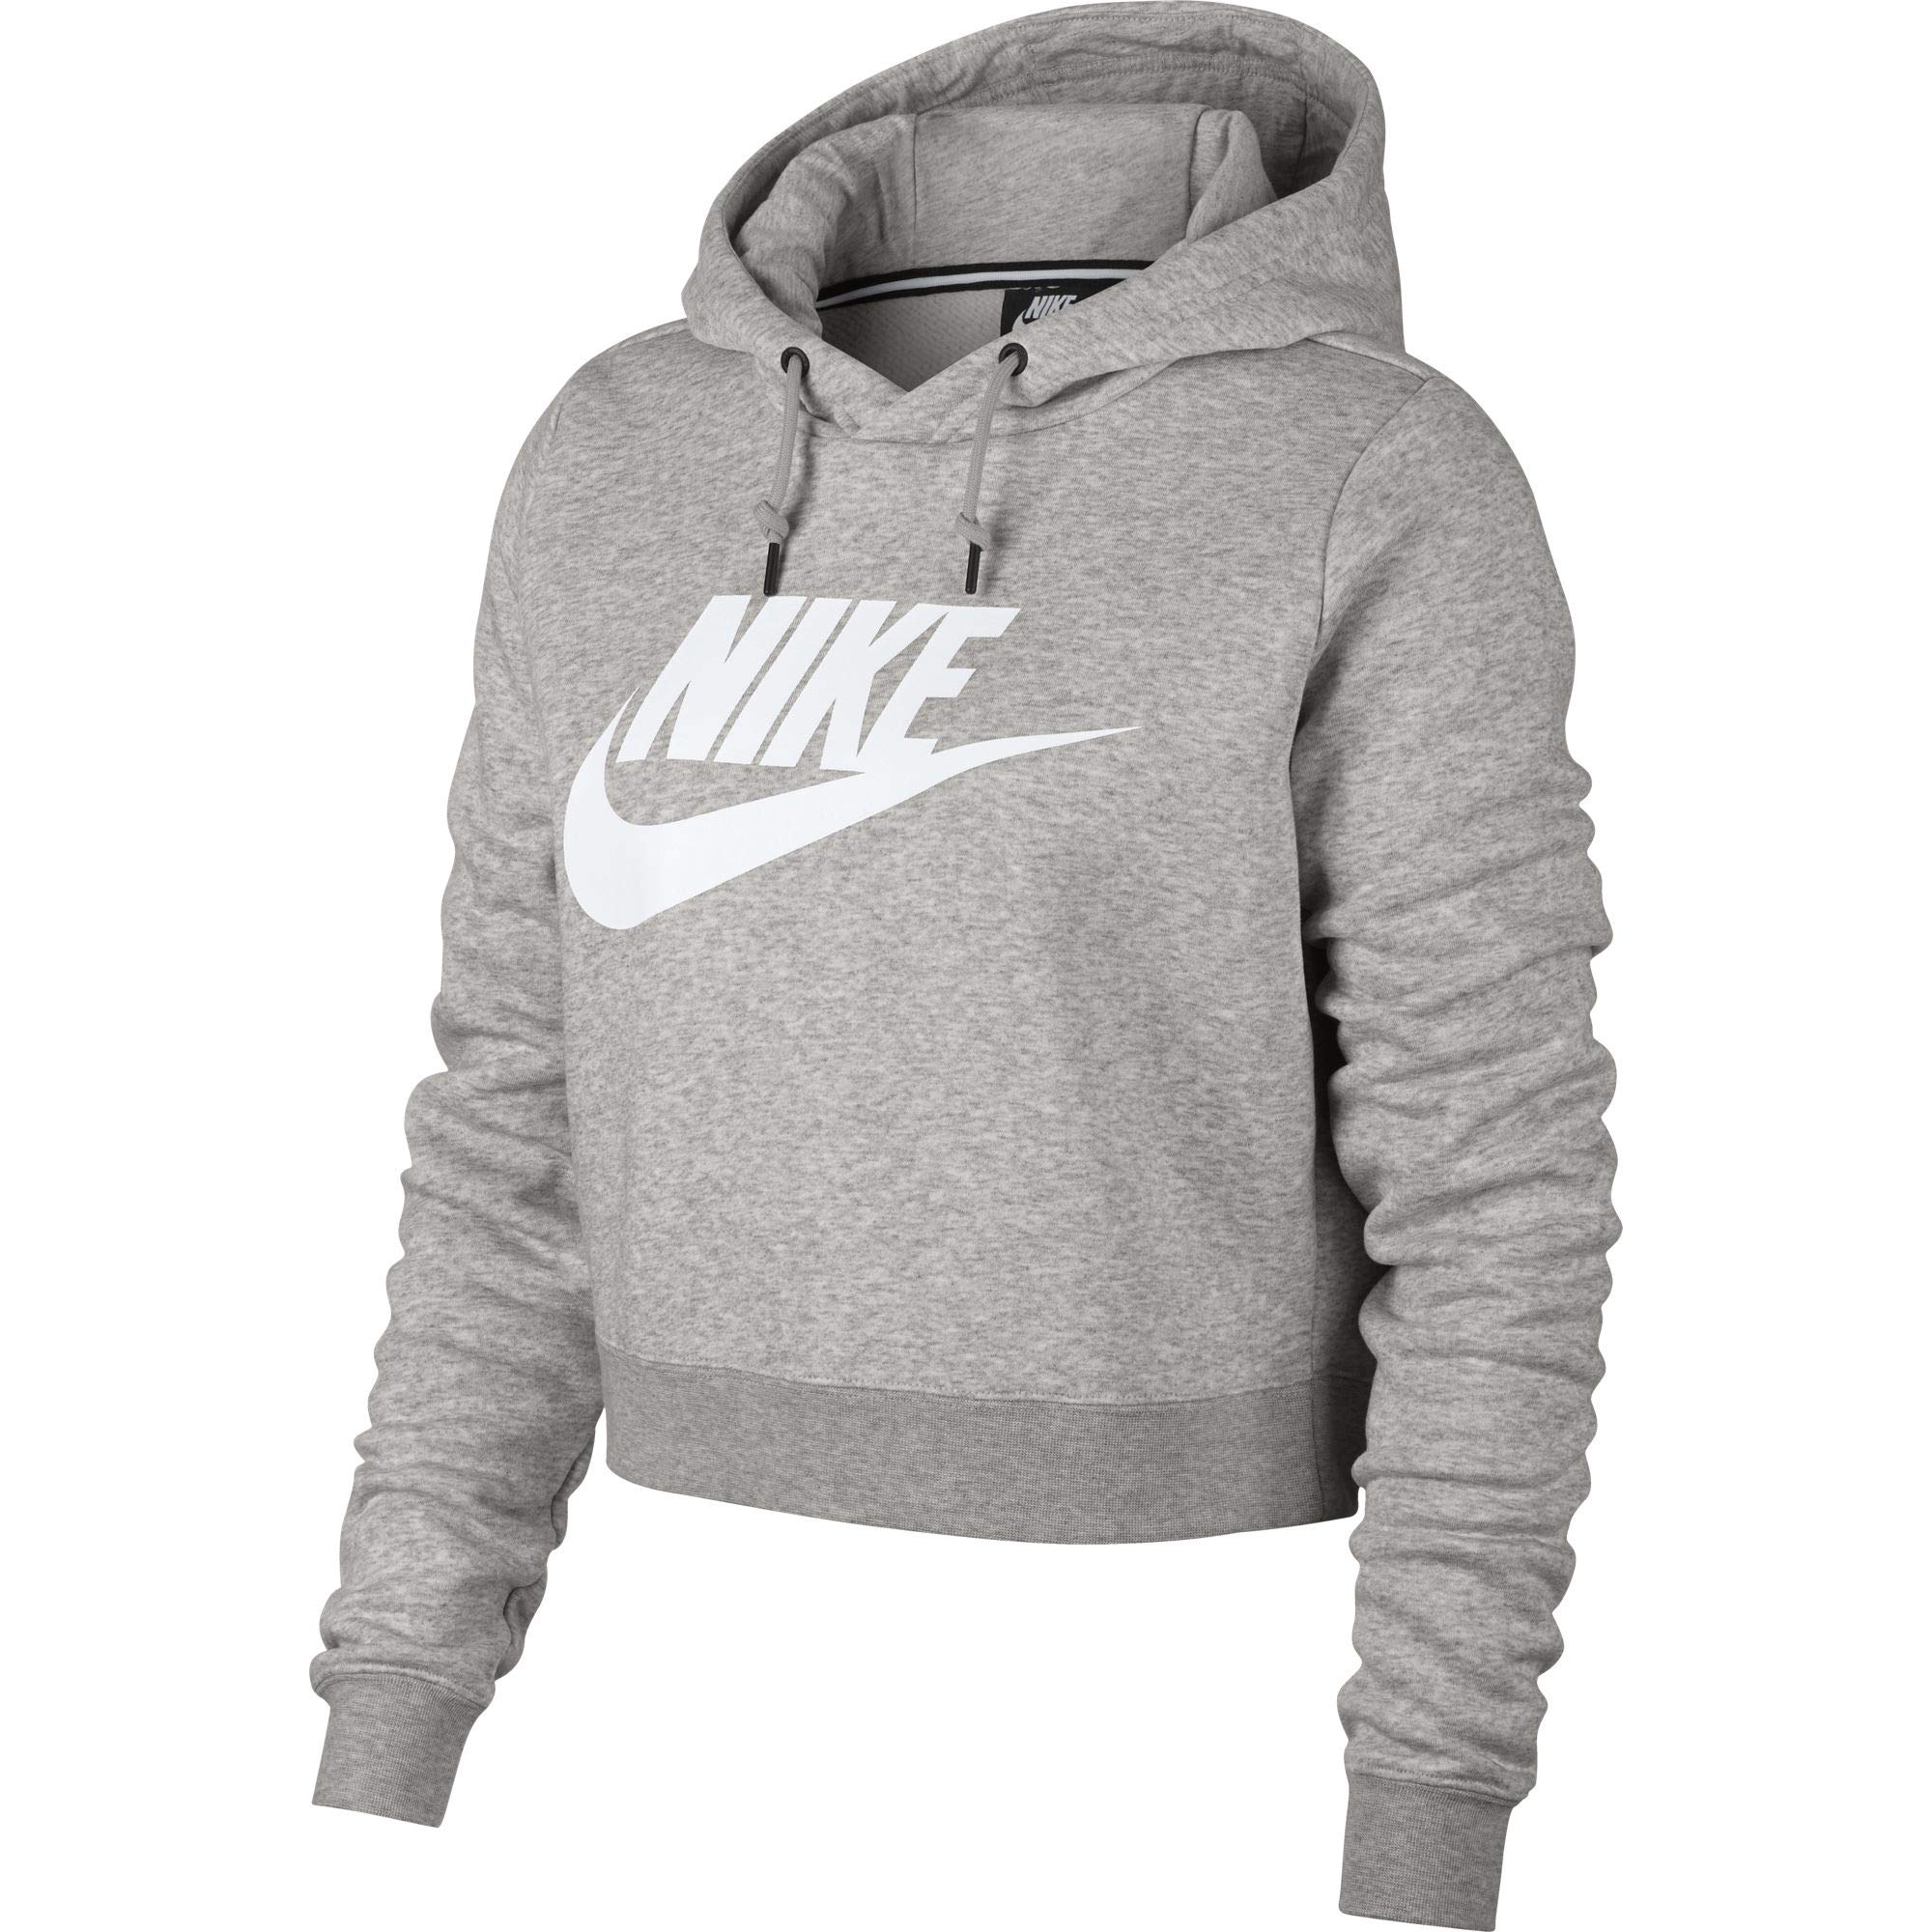 Nike Womens Rally Hoodie Crop Top Sweatshirt Grey Heather/White AQ9965-050-Size Small